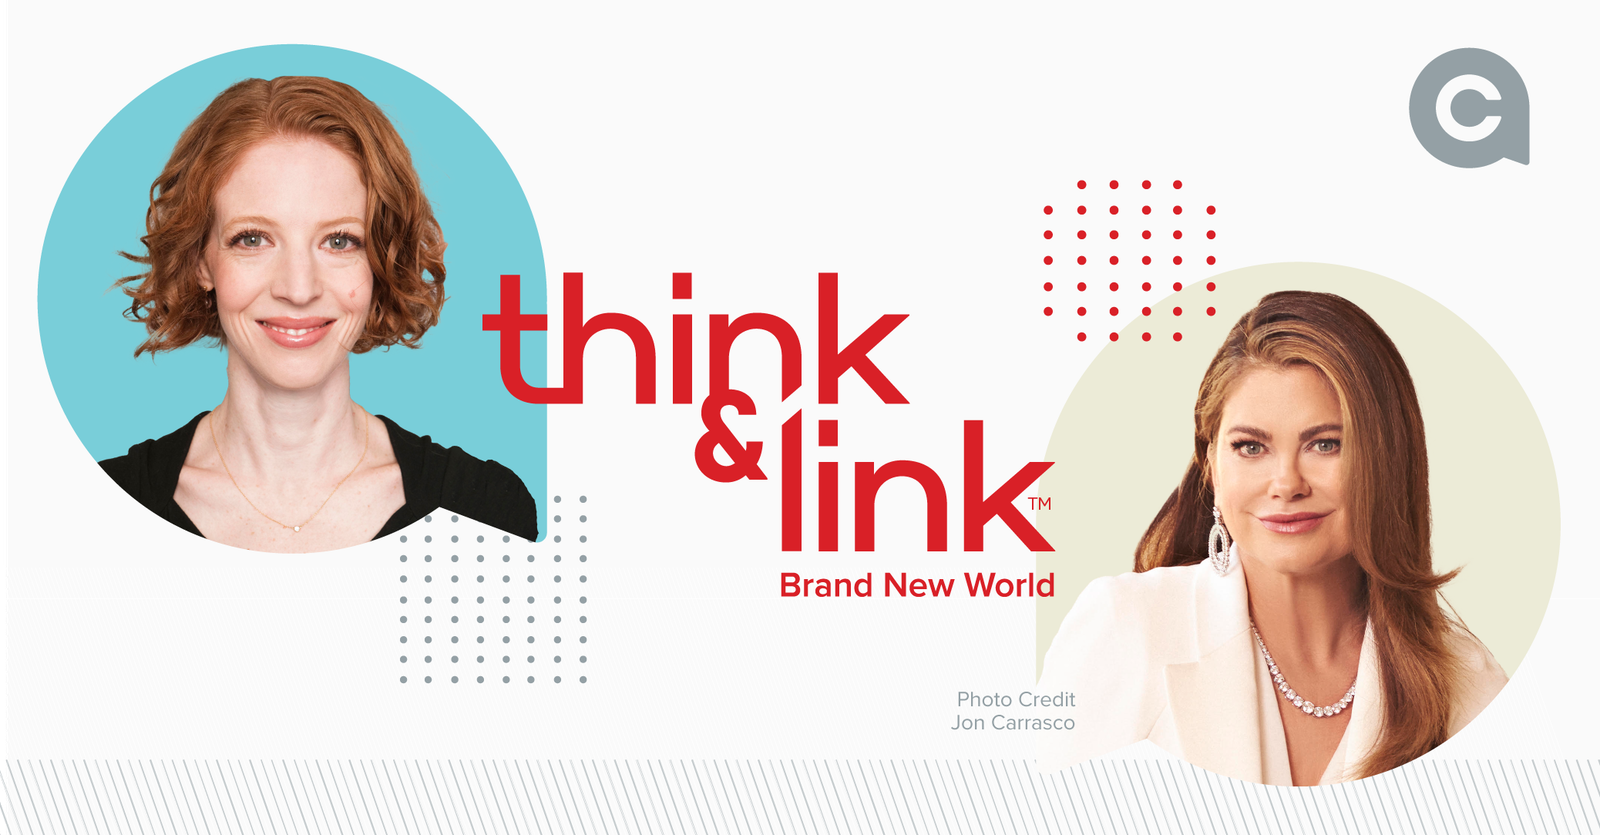 CAP 000 IDE bml Think Link Kathy Emily Blog A 1